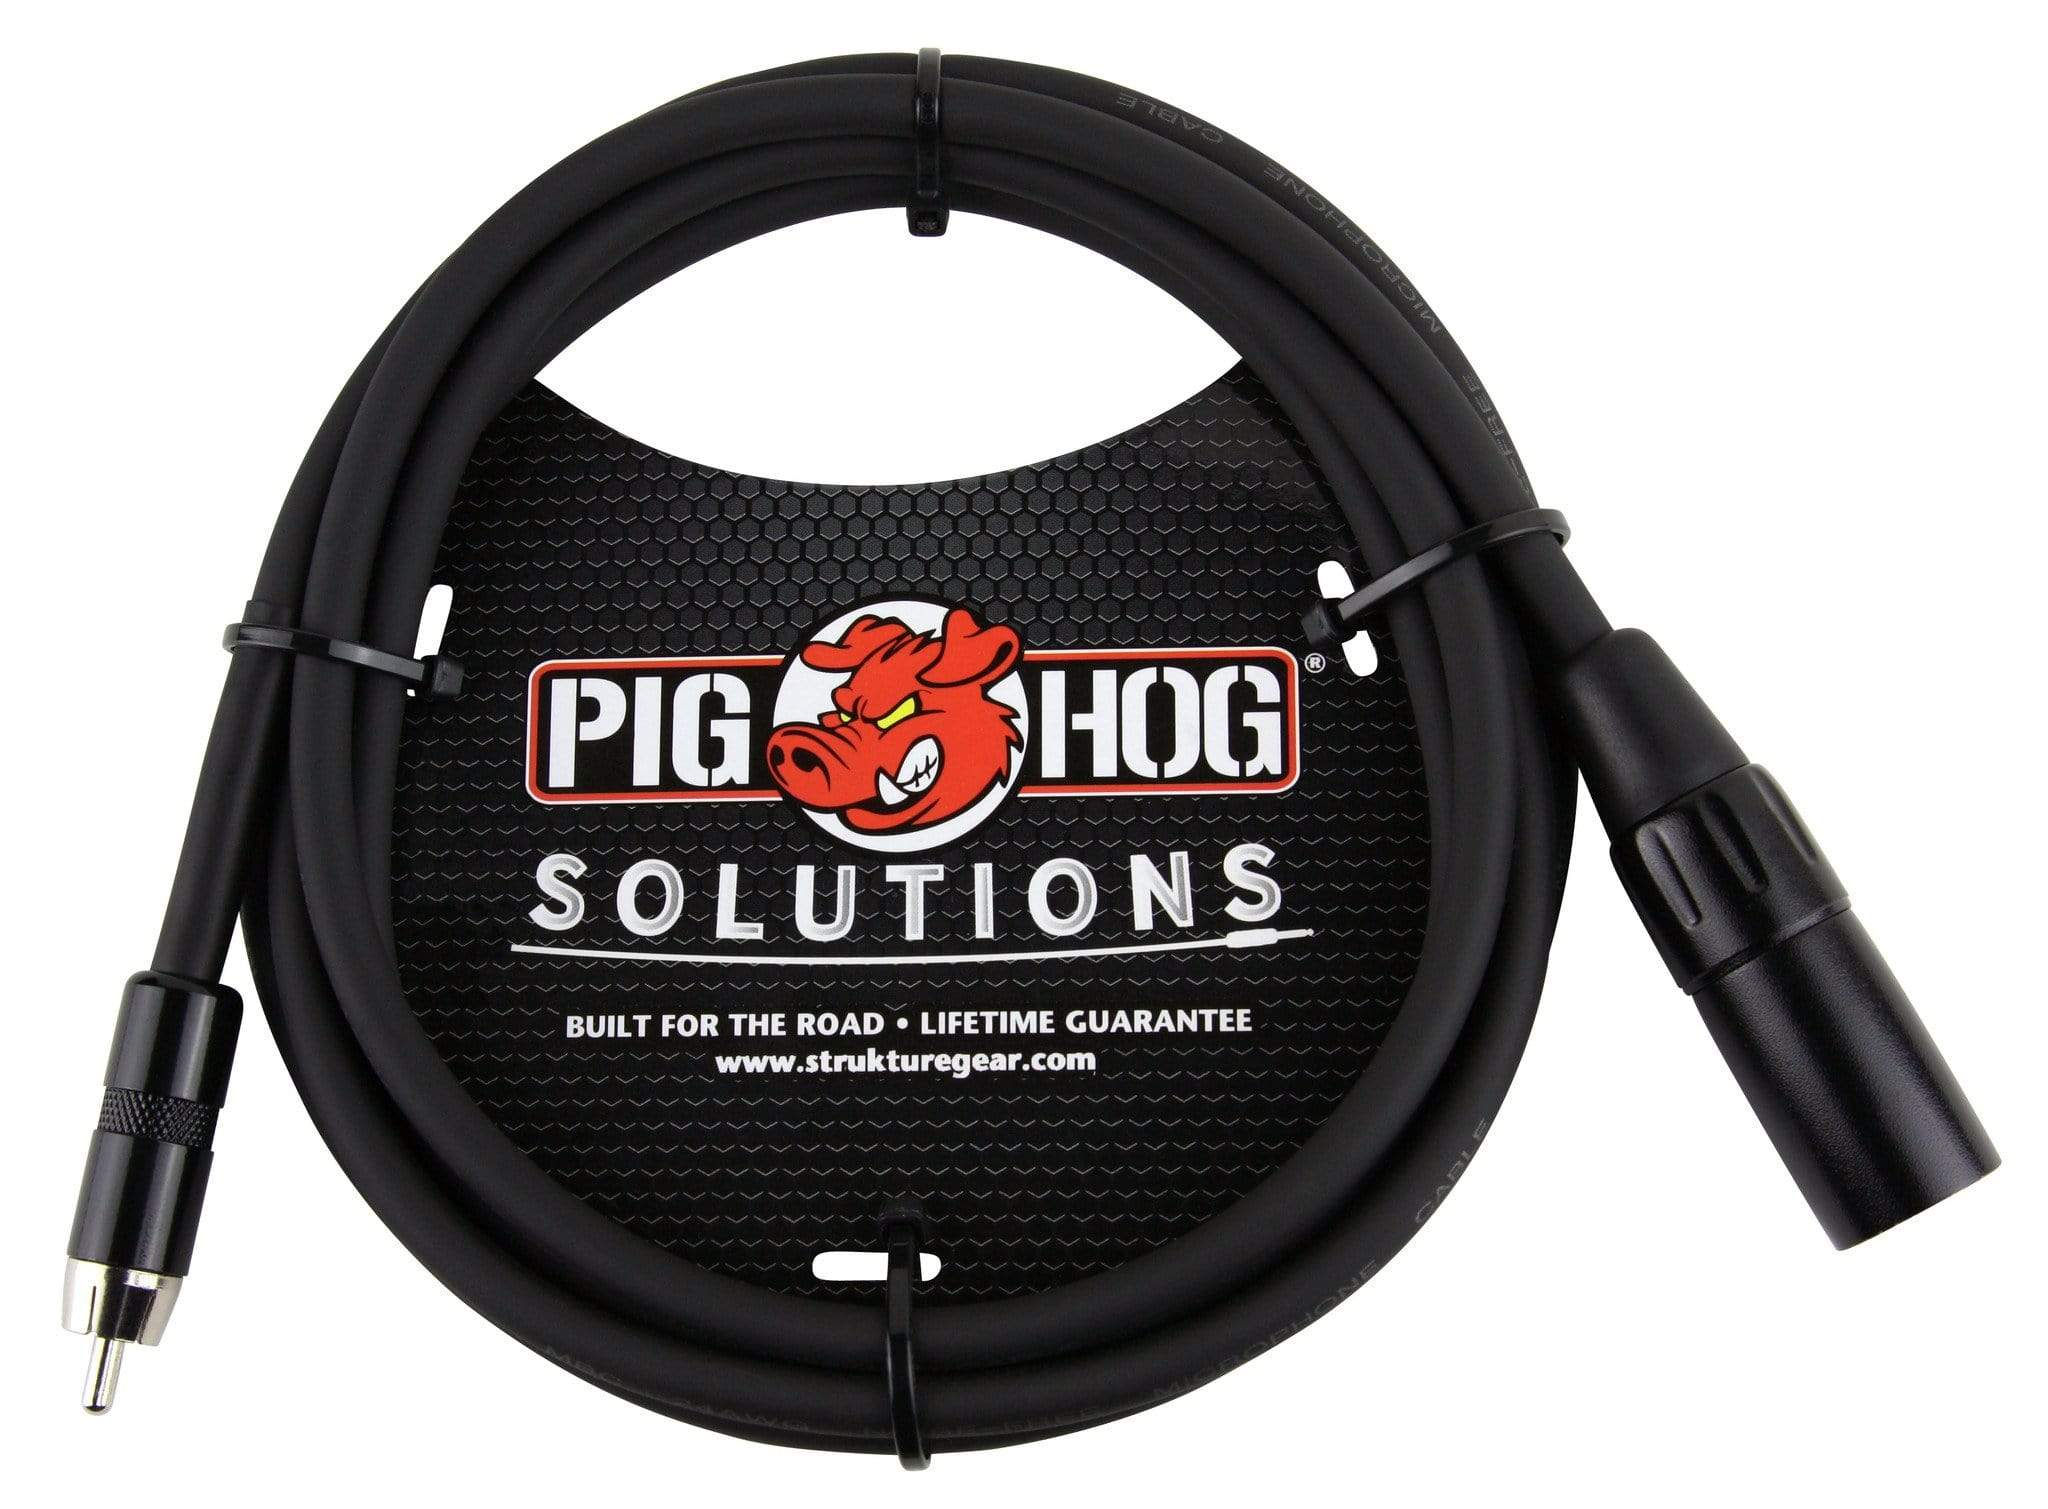 PIG HOG INTERCONNECT CABLES Pig Hog 6 ft XLR Male to RCA Male Audio Cable Adapter Plug Cord NEW